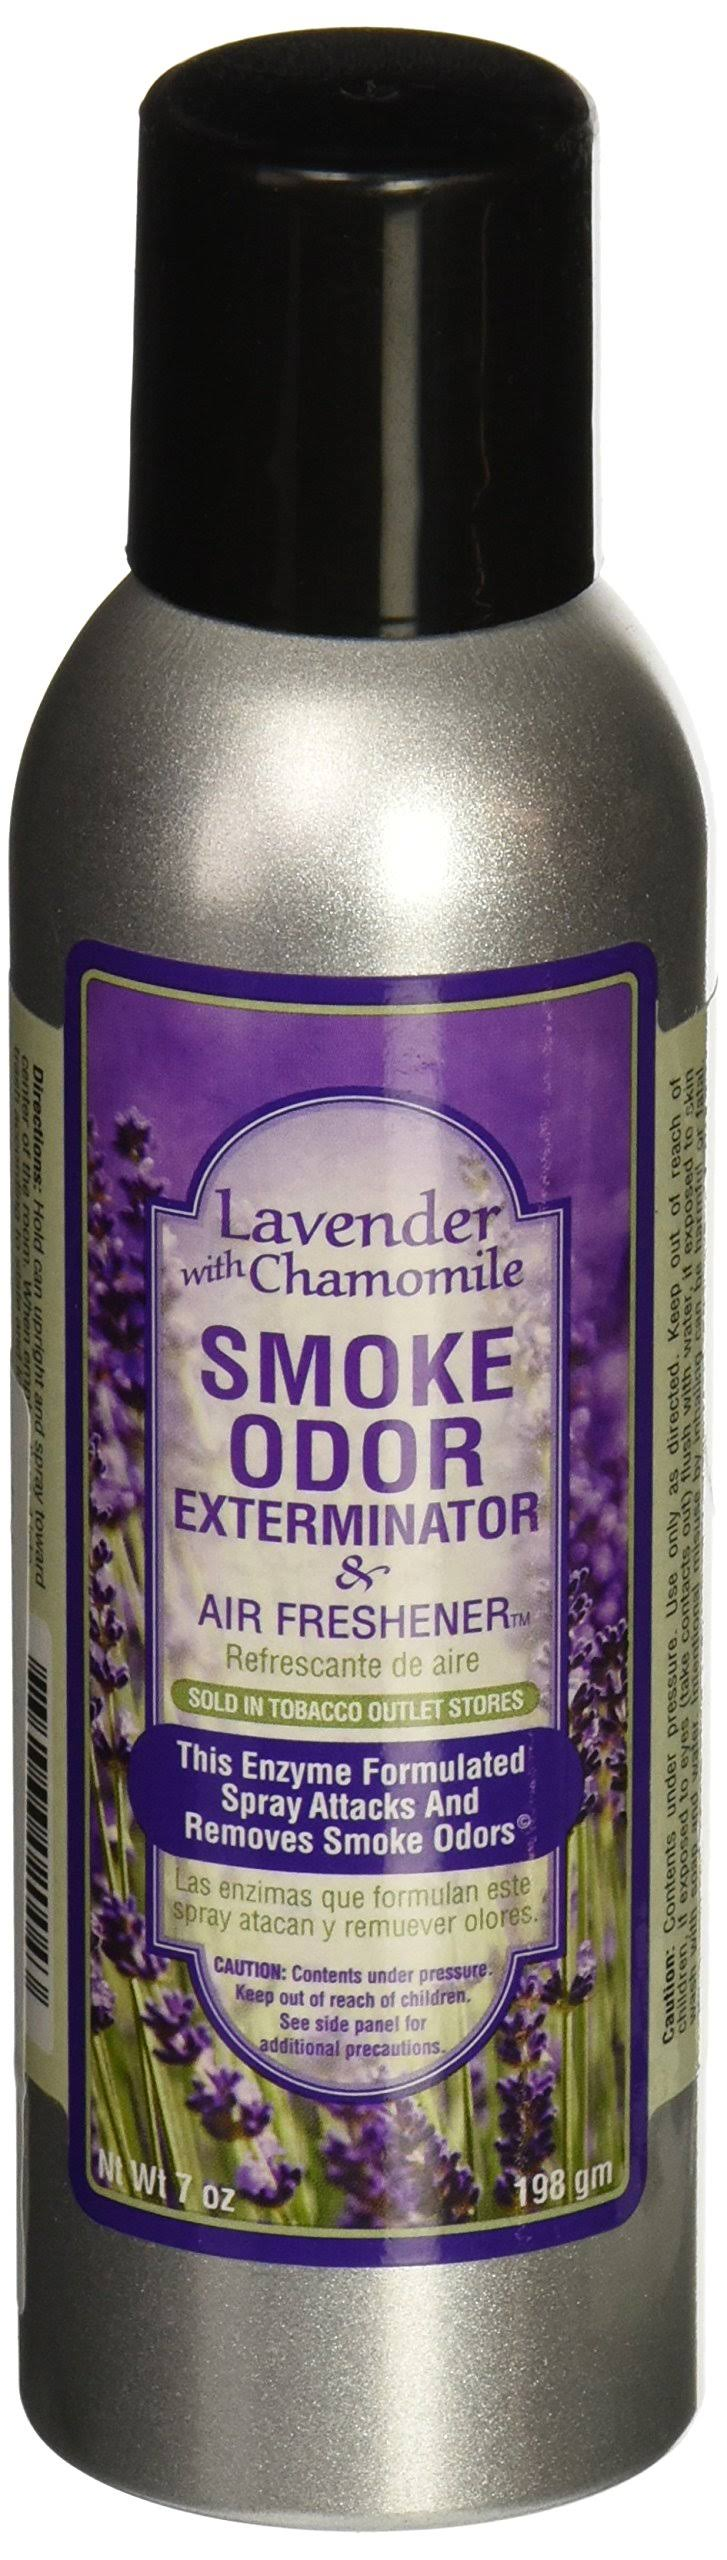 Tobacco Outlet Smoke Odor Exterminator Spray - Lavender with Chamomile, 7oz